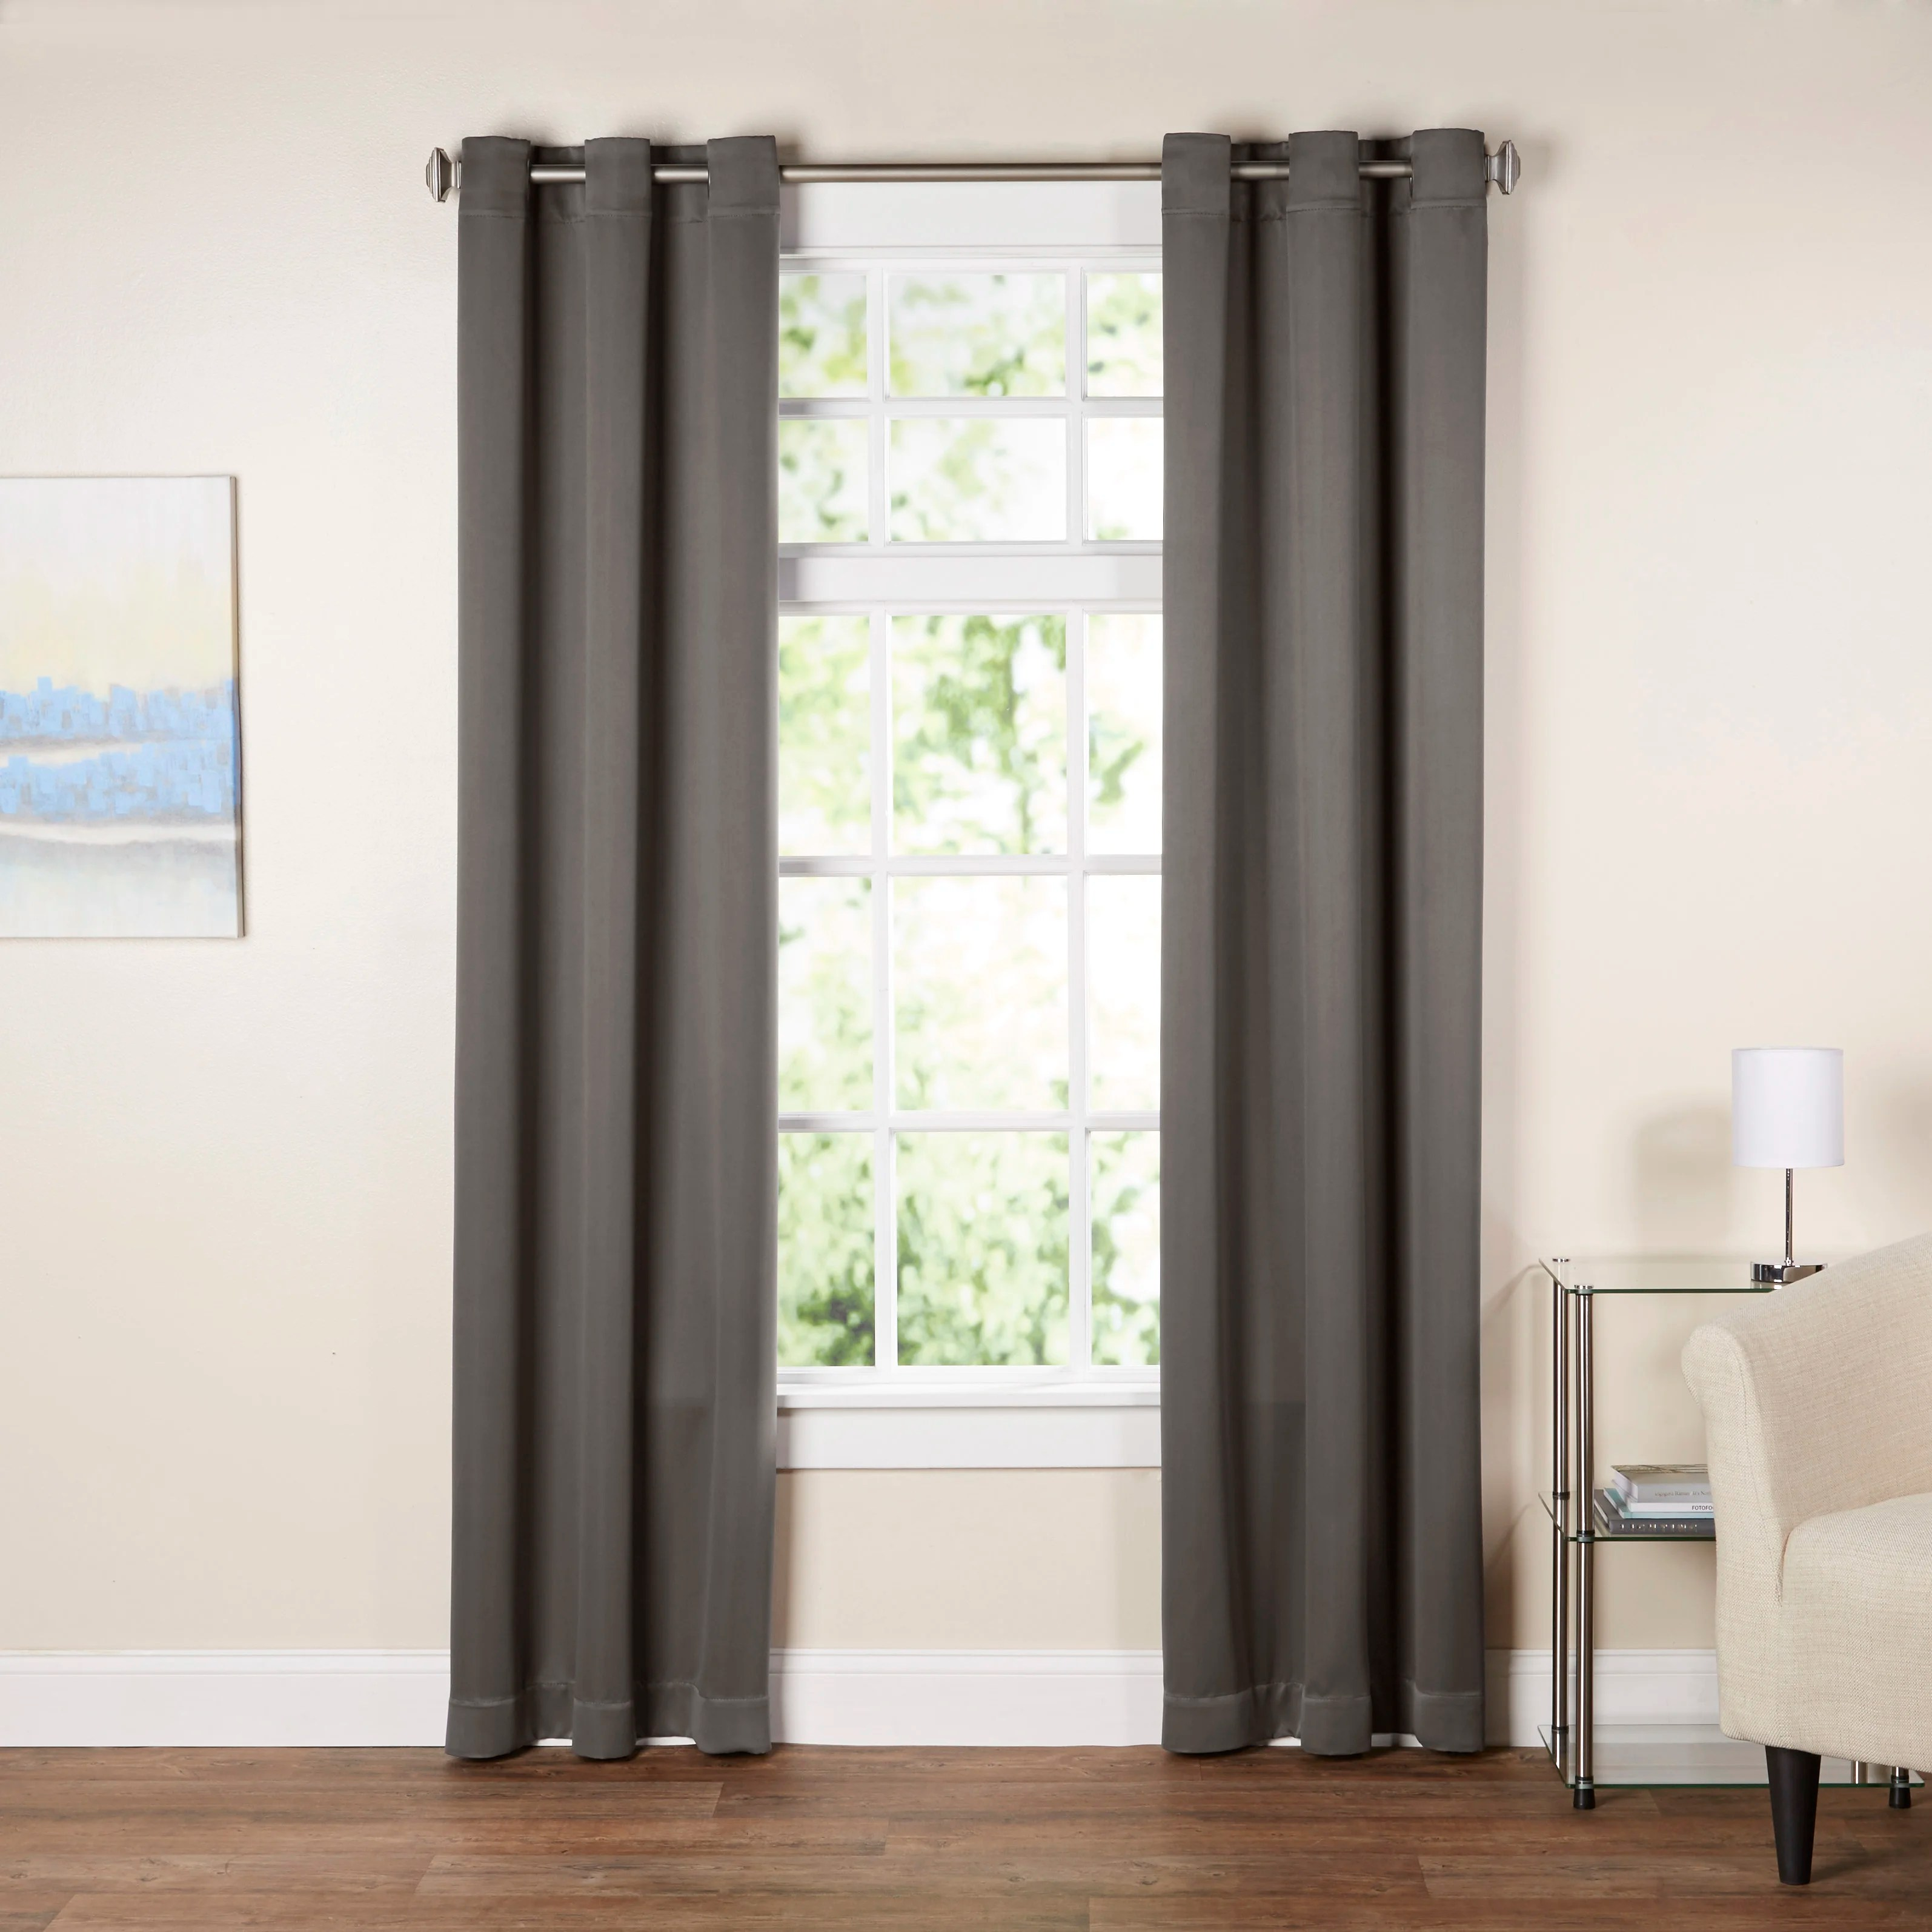 36 Inch Room Darkening Curtains Wayfair Basics Solid Room Darkening Grommet Single Curtain Panel